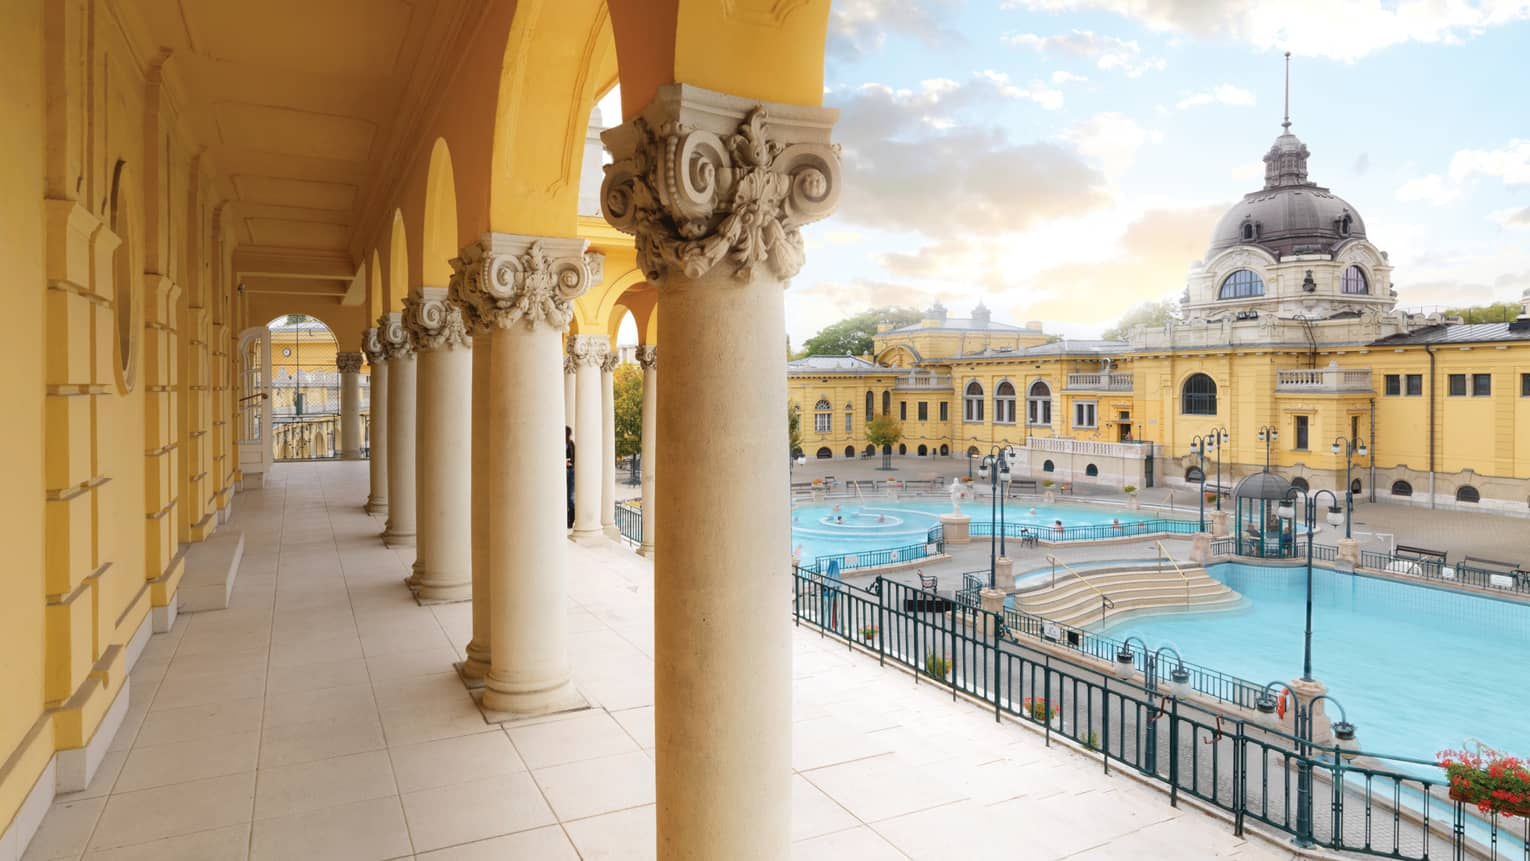 The Széchenyi Thermal Bath pools surrounded by historic building, pillars